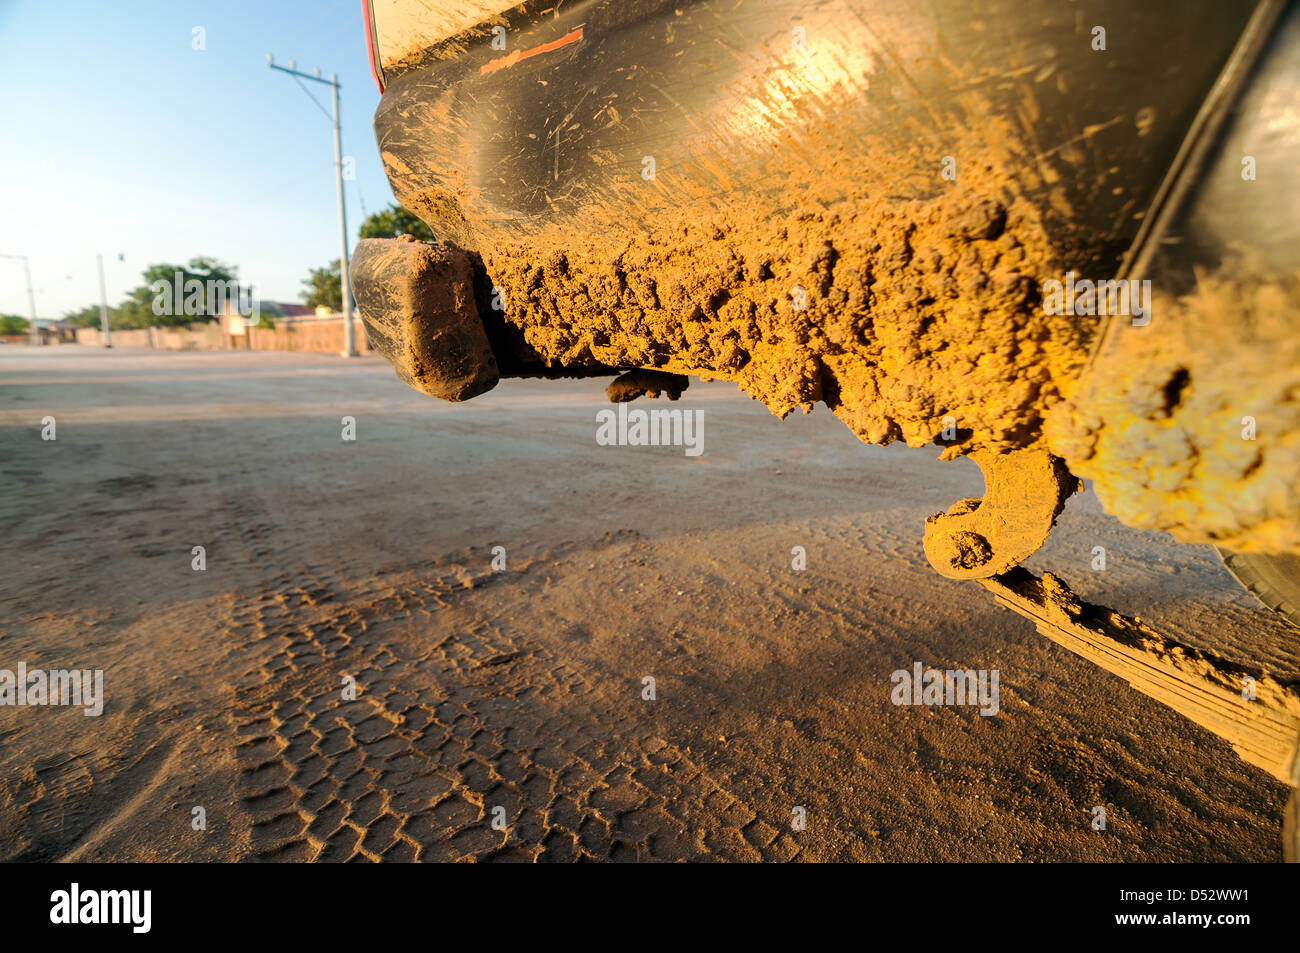 A muddy dirty SUV with a beach town in the background - Stock Image